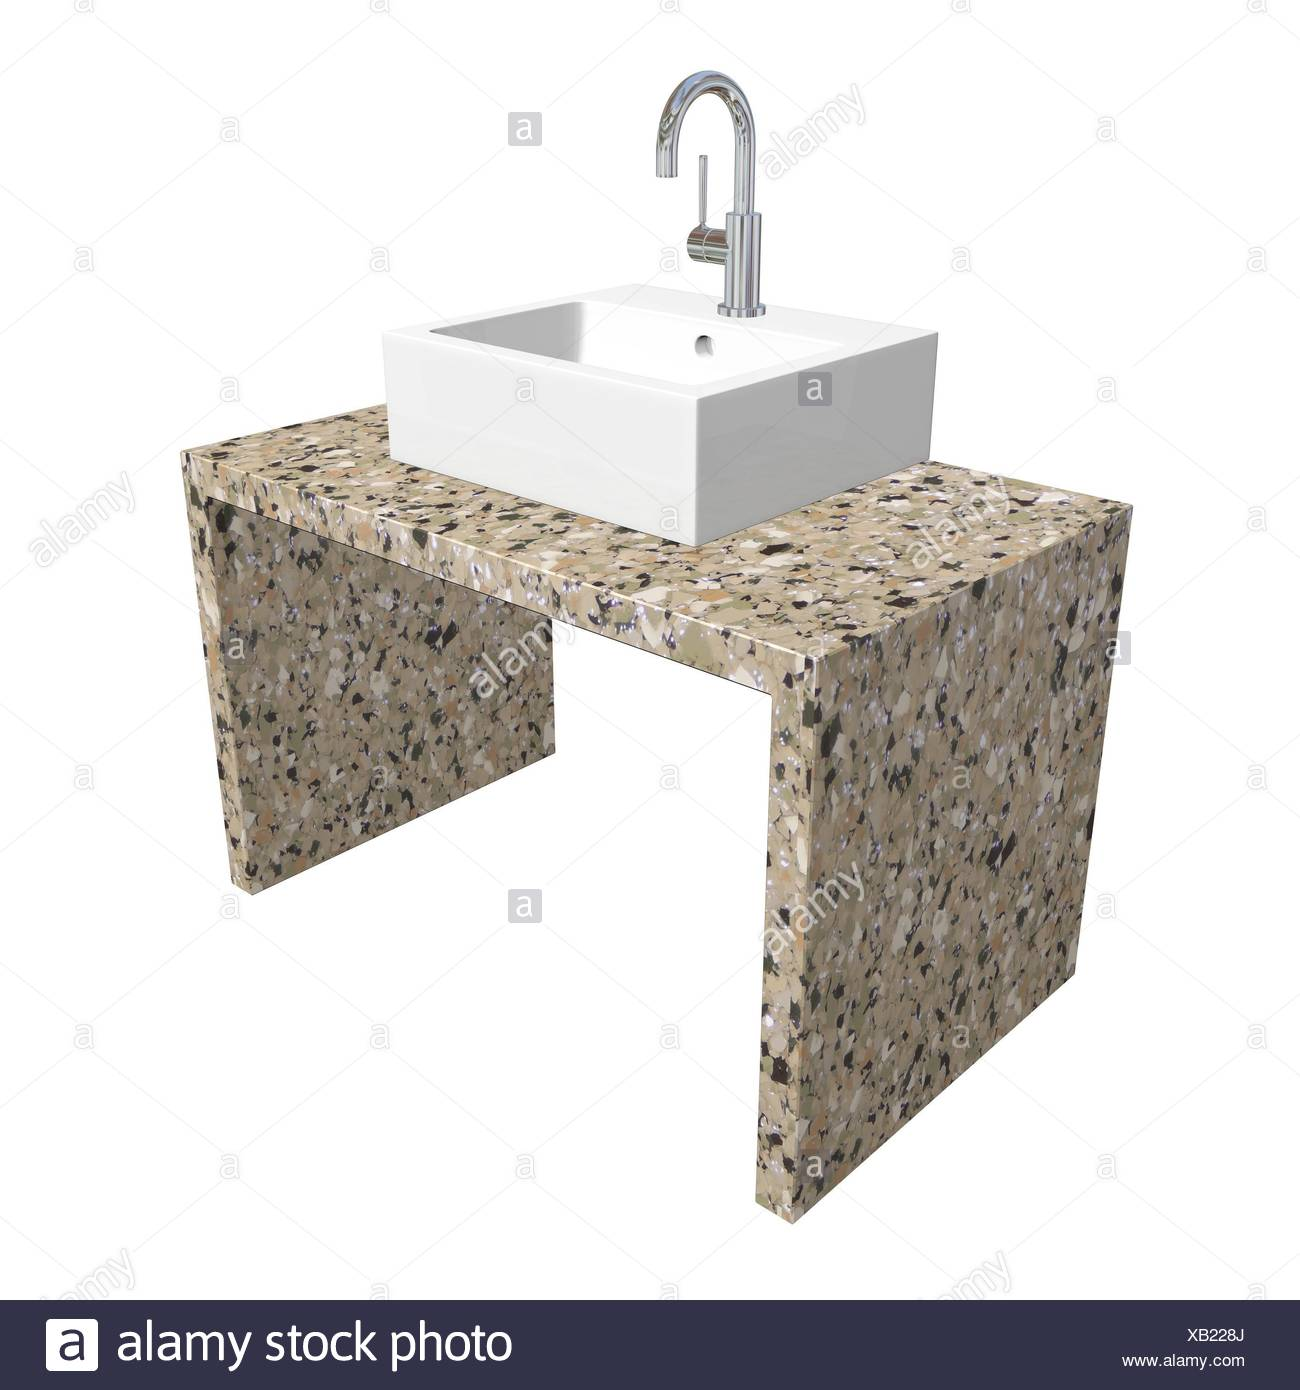 https www alamy com modern bathroom sink set with ceramic or acrylic wash basin chrome fixtures and marble base 3d illustration isolated against a white background image282172818 html